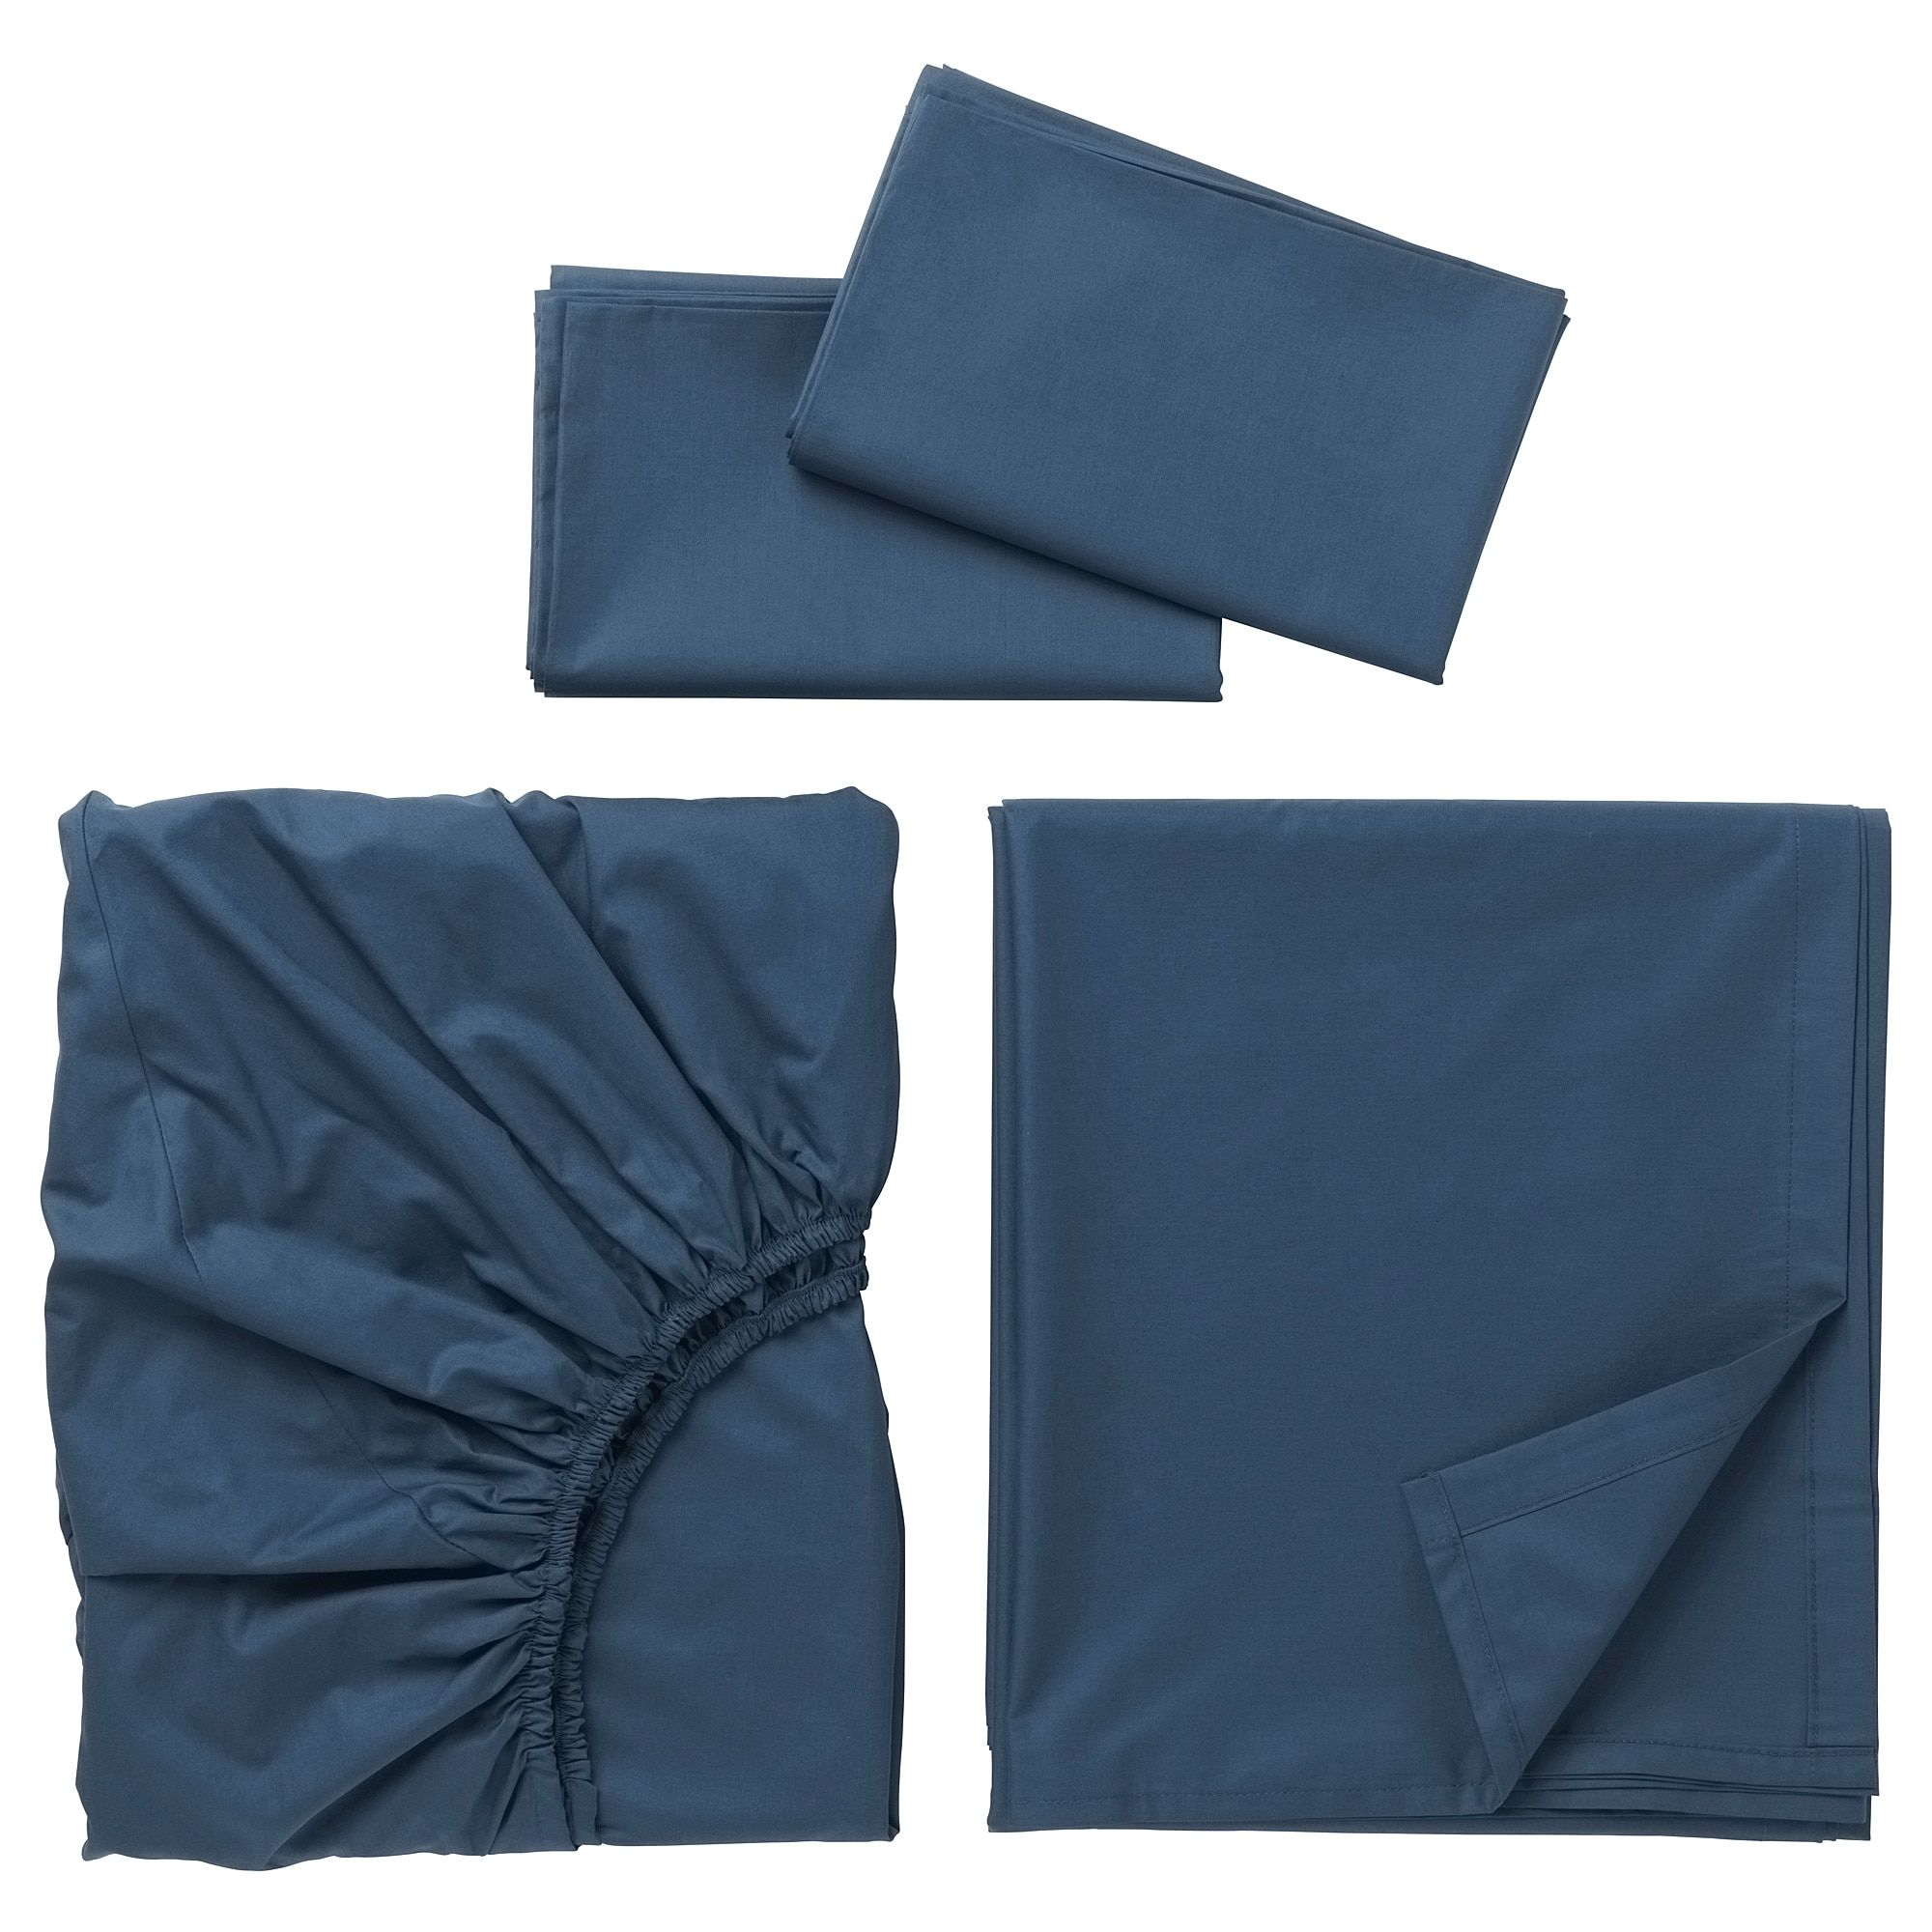 ULLVIDE Sheet set dark blue. Shop here IKEA Blue